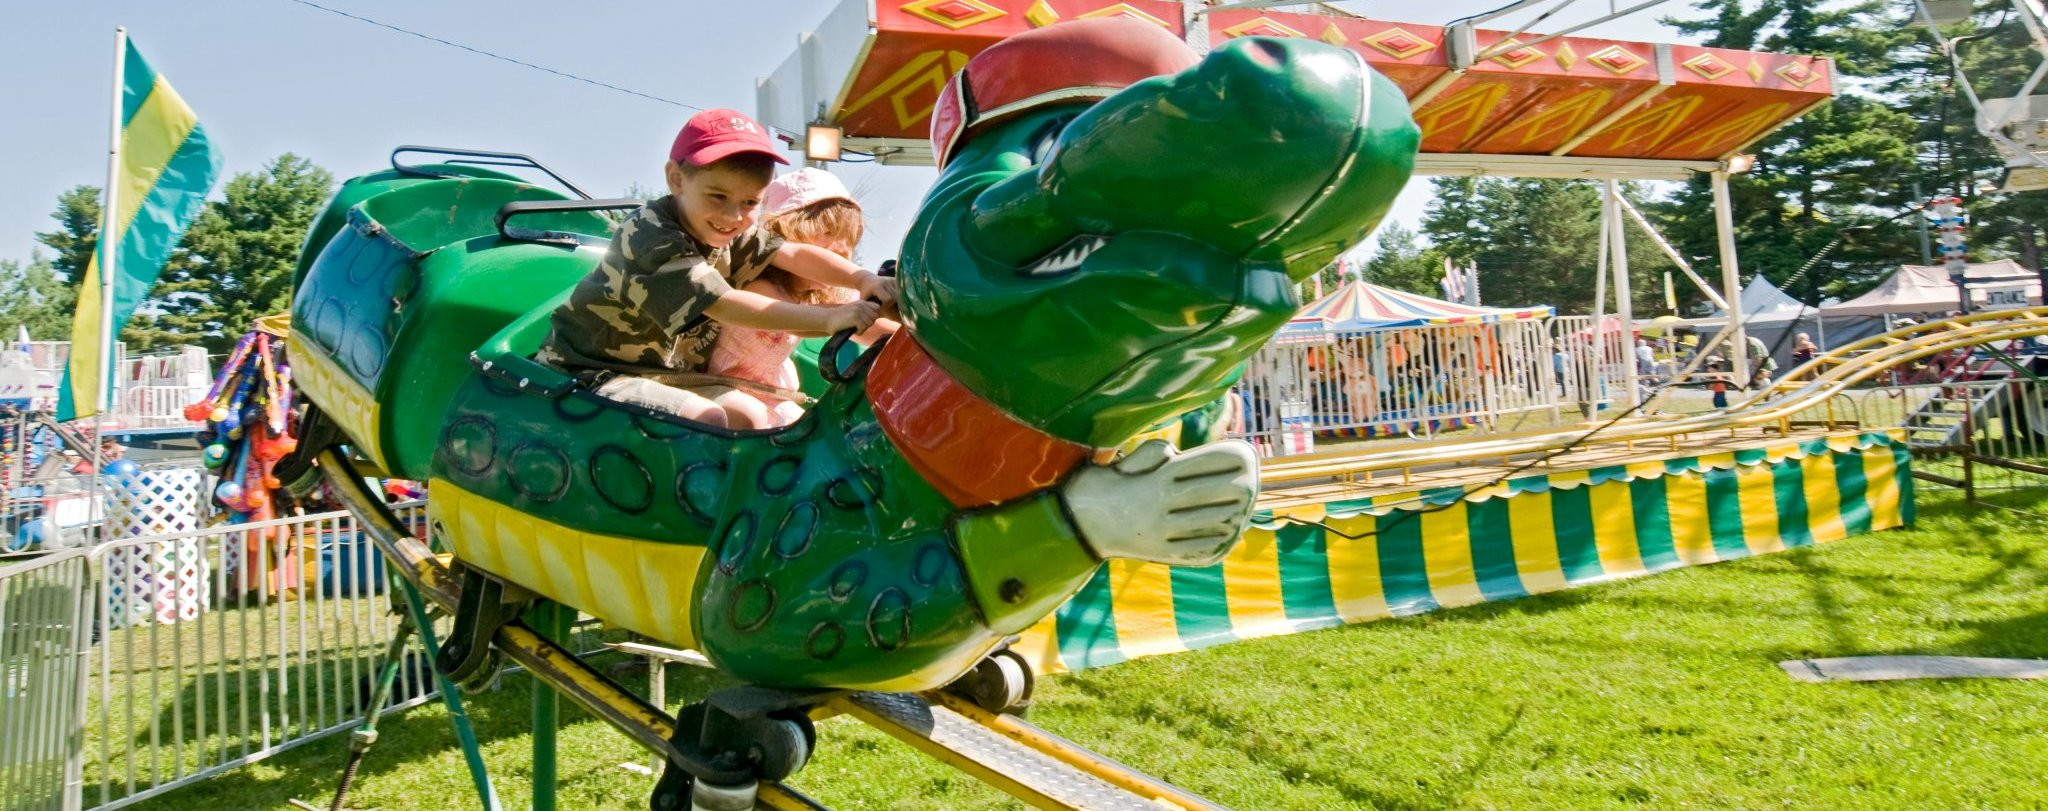 Picture of children on ride at Maxville Fair